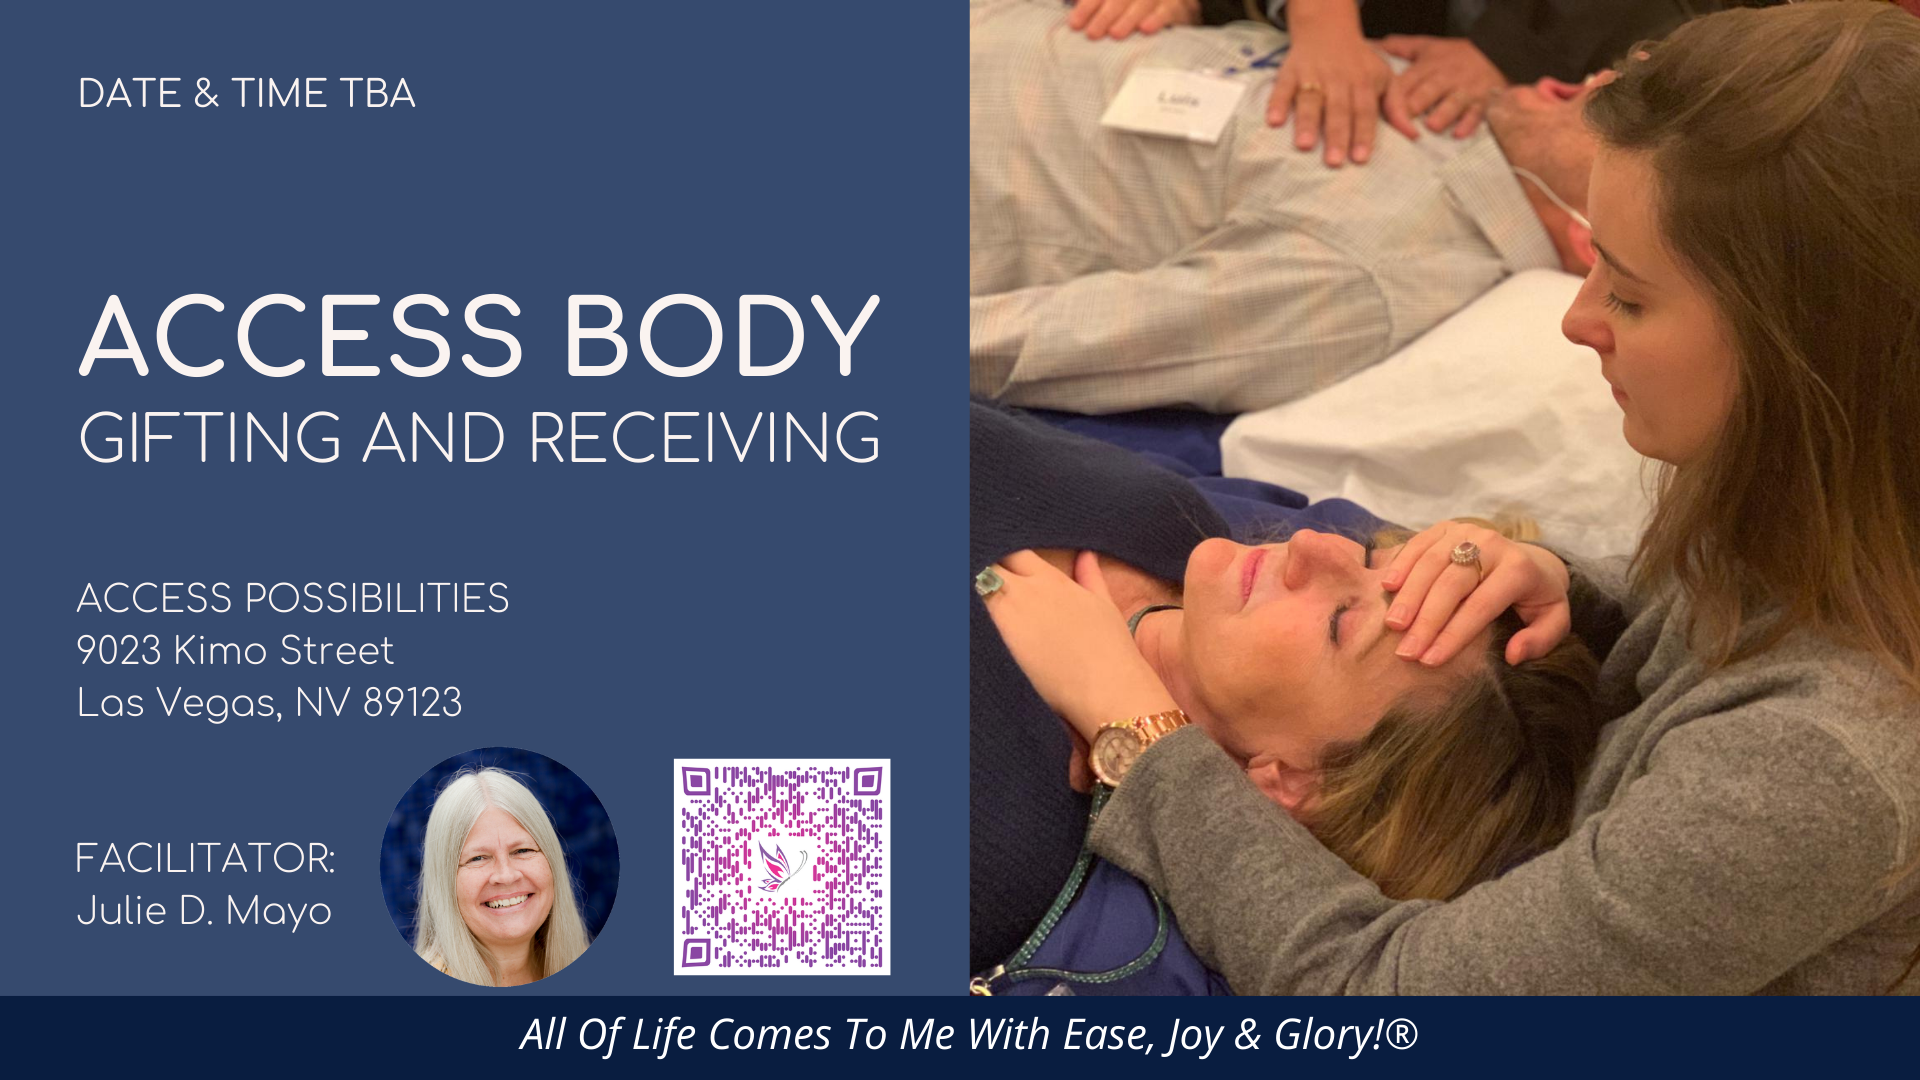 Access Body Gifting And Receiving | Access Possibilities